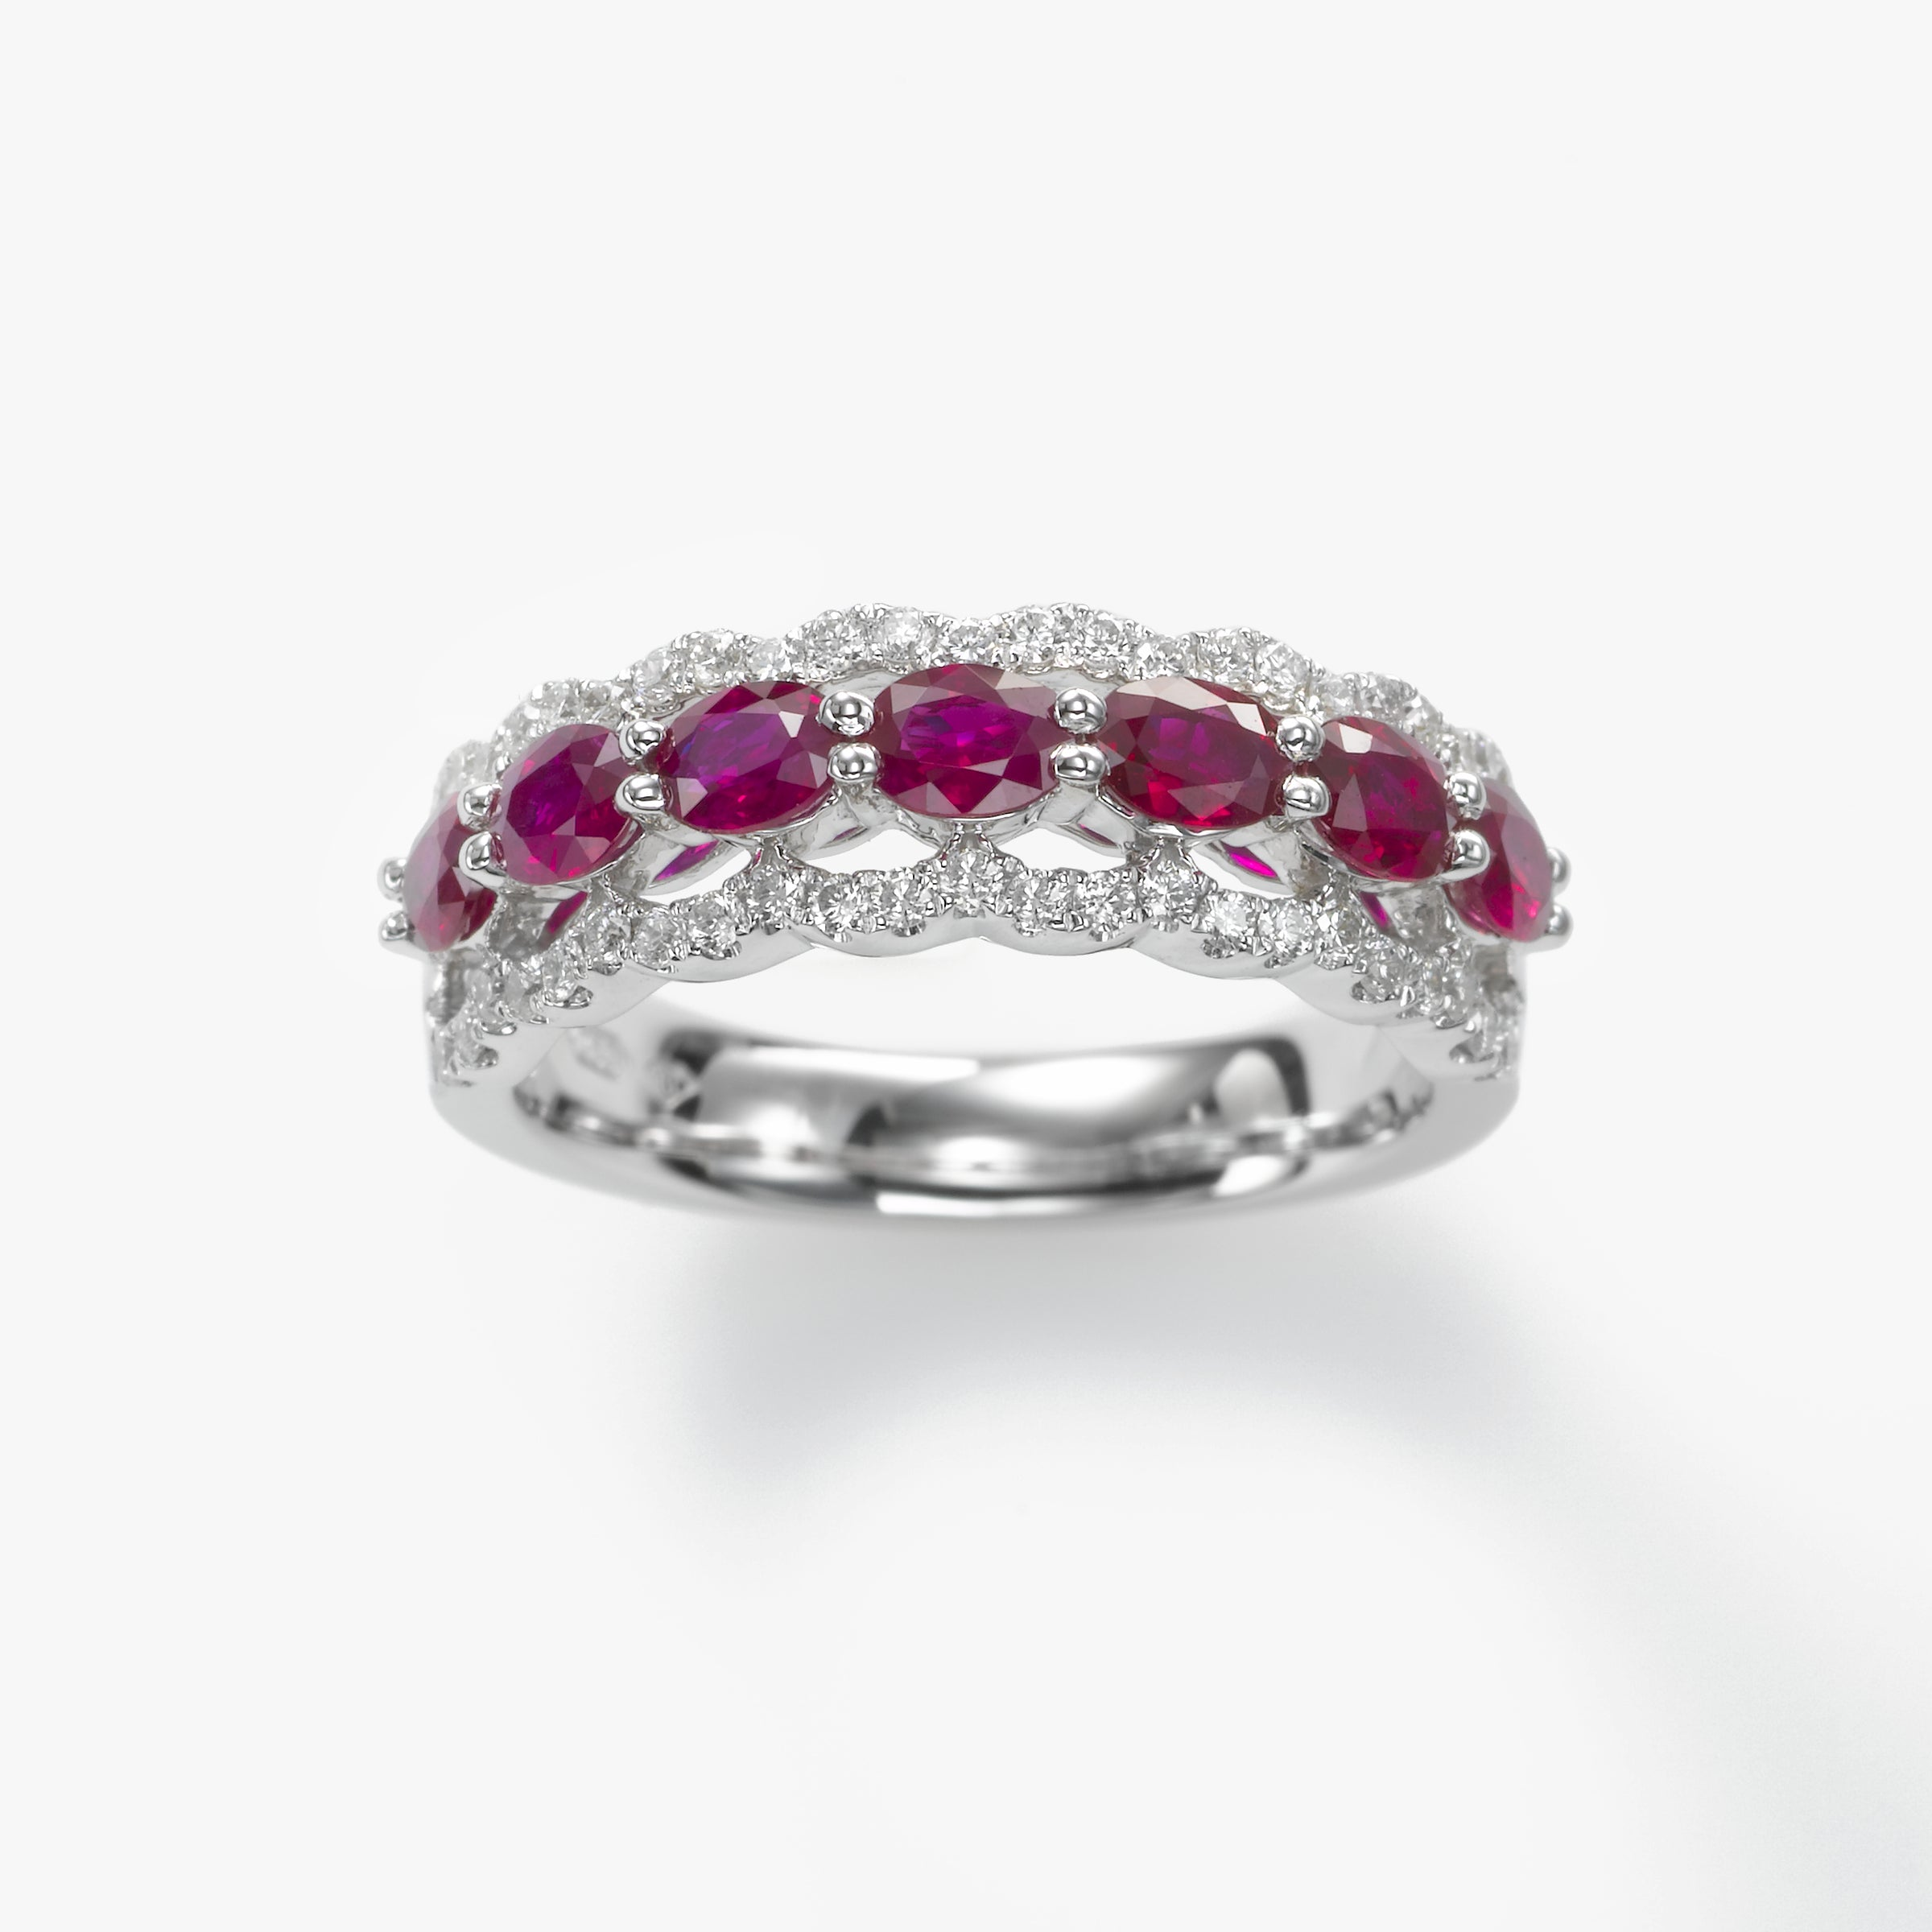 Oval Rubies Band with Diamonds, 18K White Gold